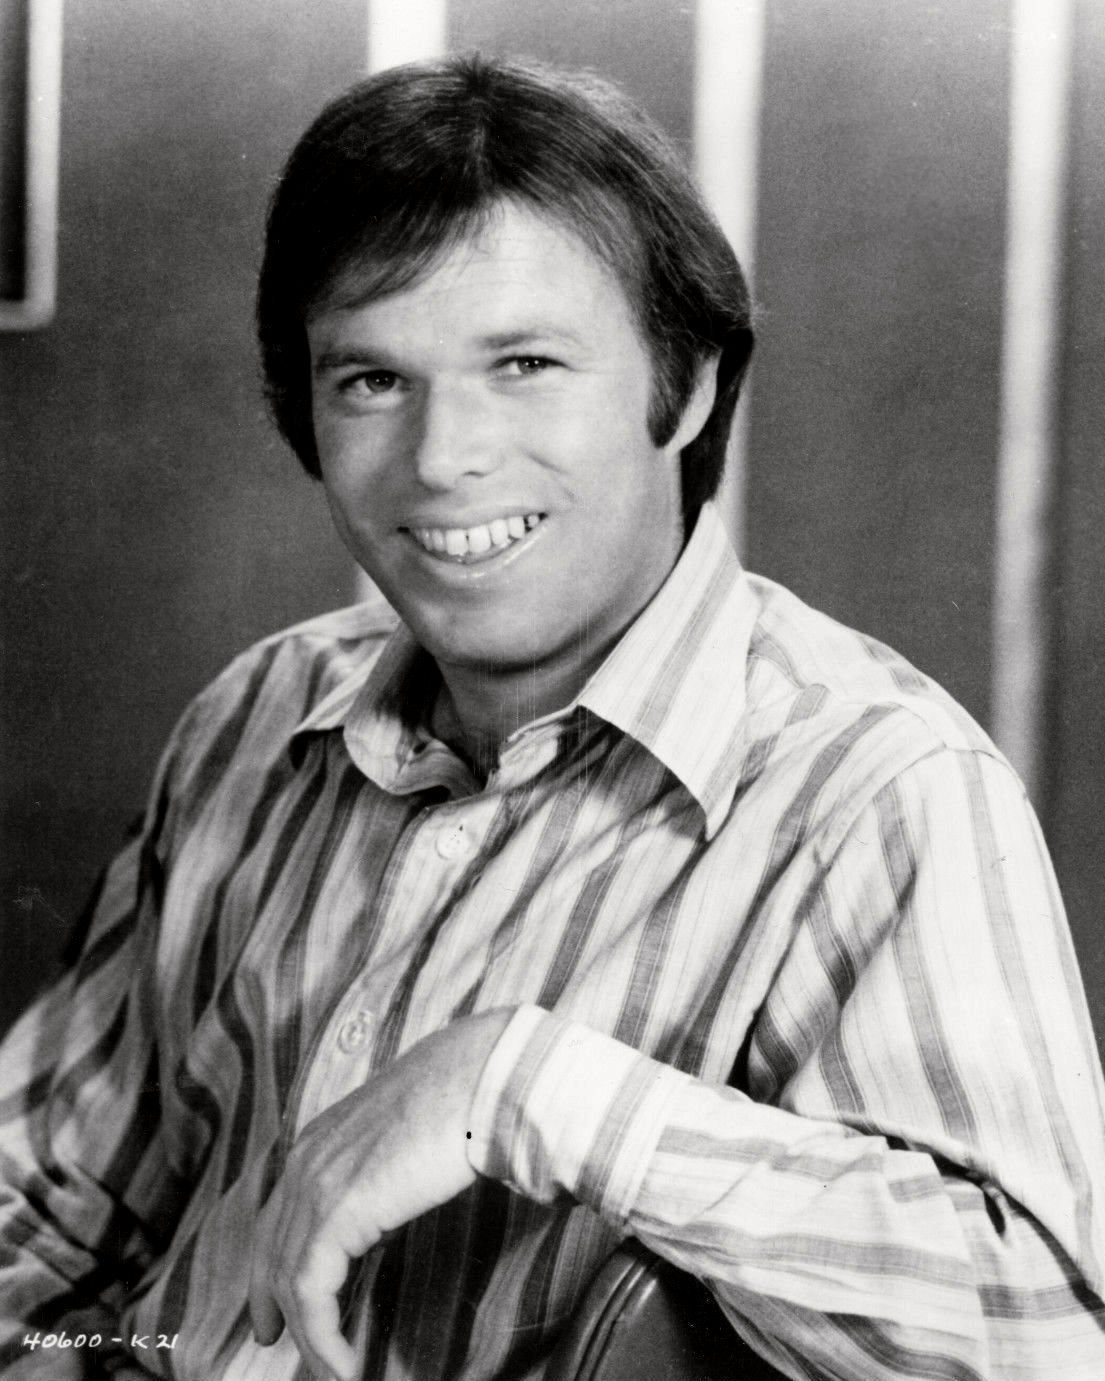 ACTOR KEVIN TIGHE ROY DESOTO IN 'EMERGENCY!' - 8X10 PUBLICITY PHOTO (ZY-201)